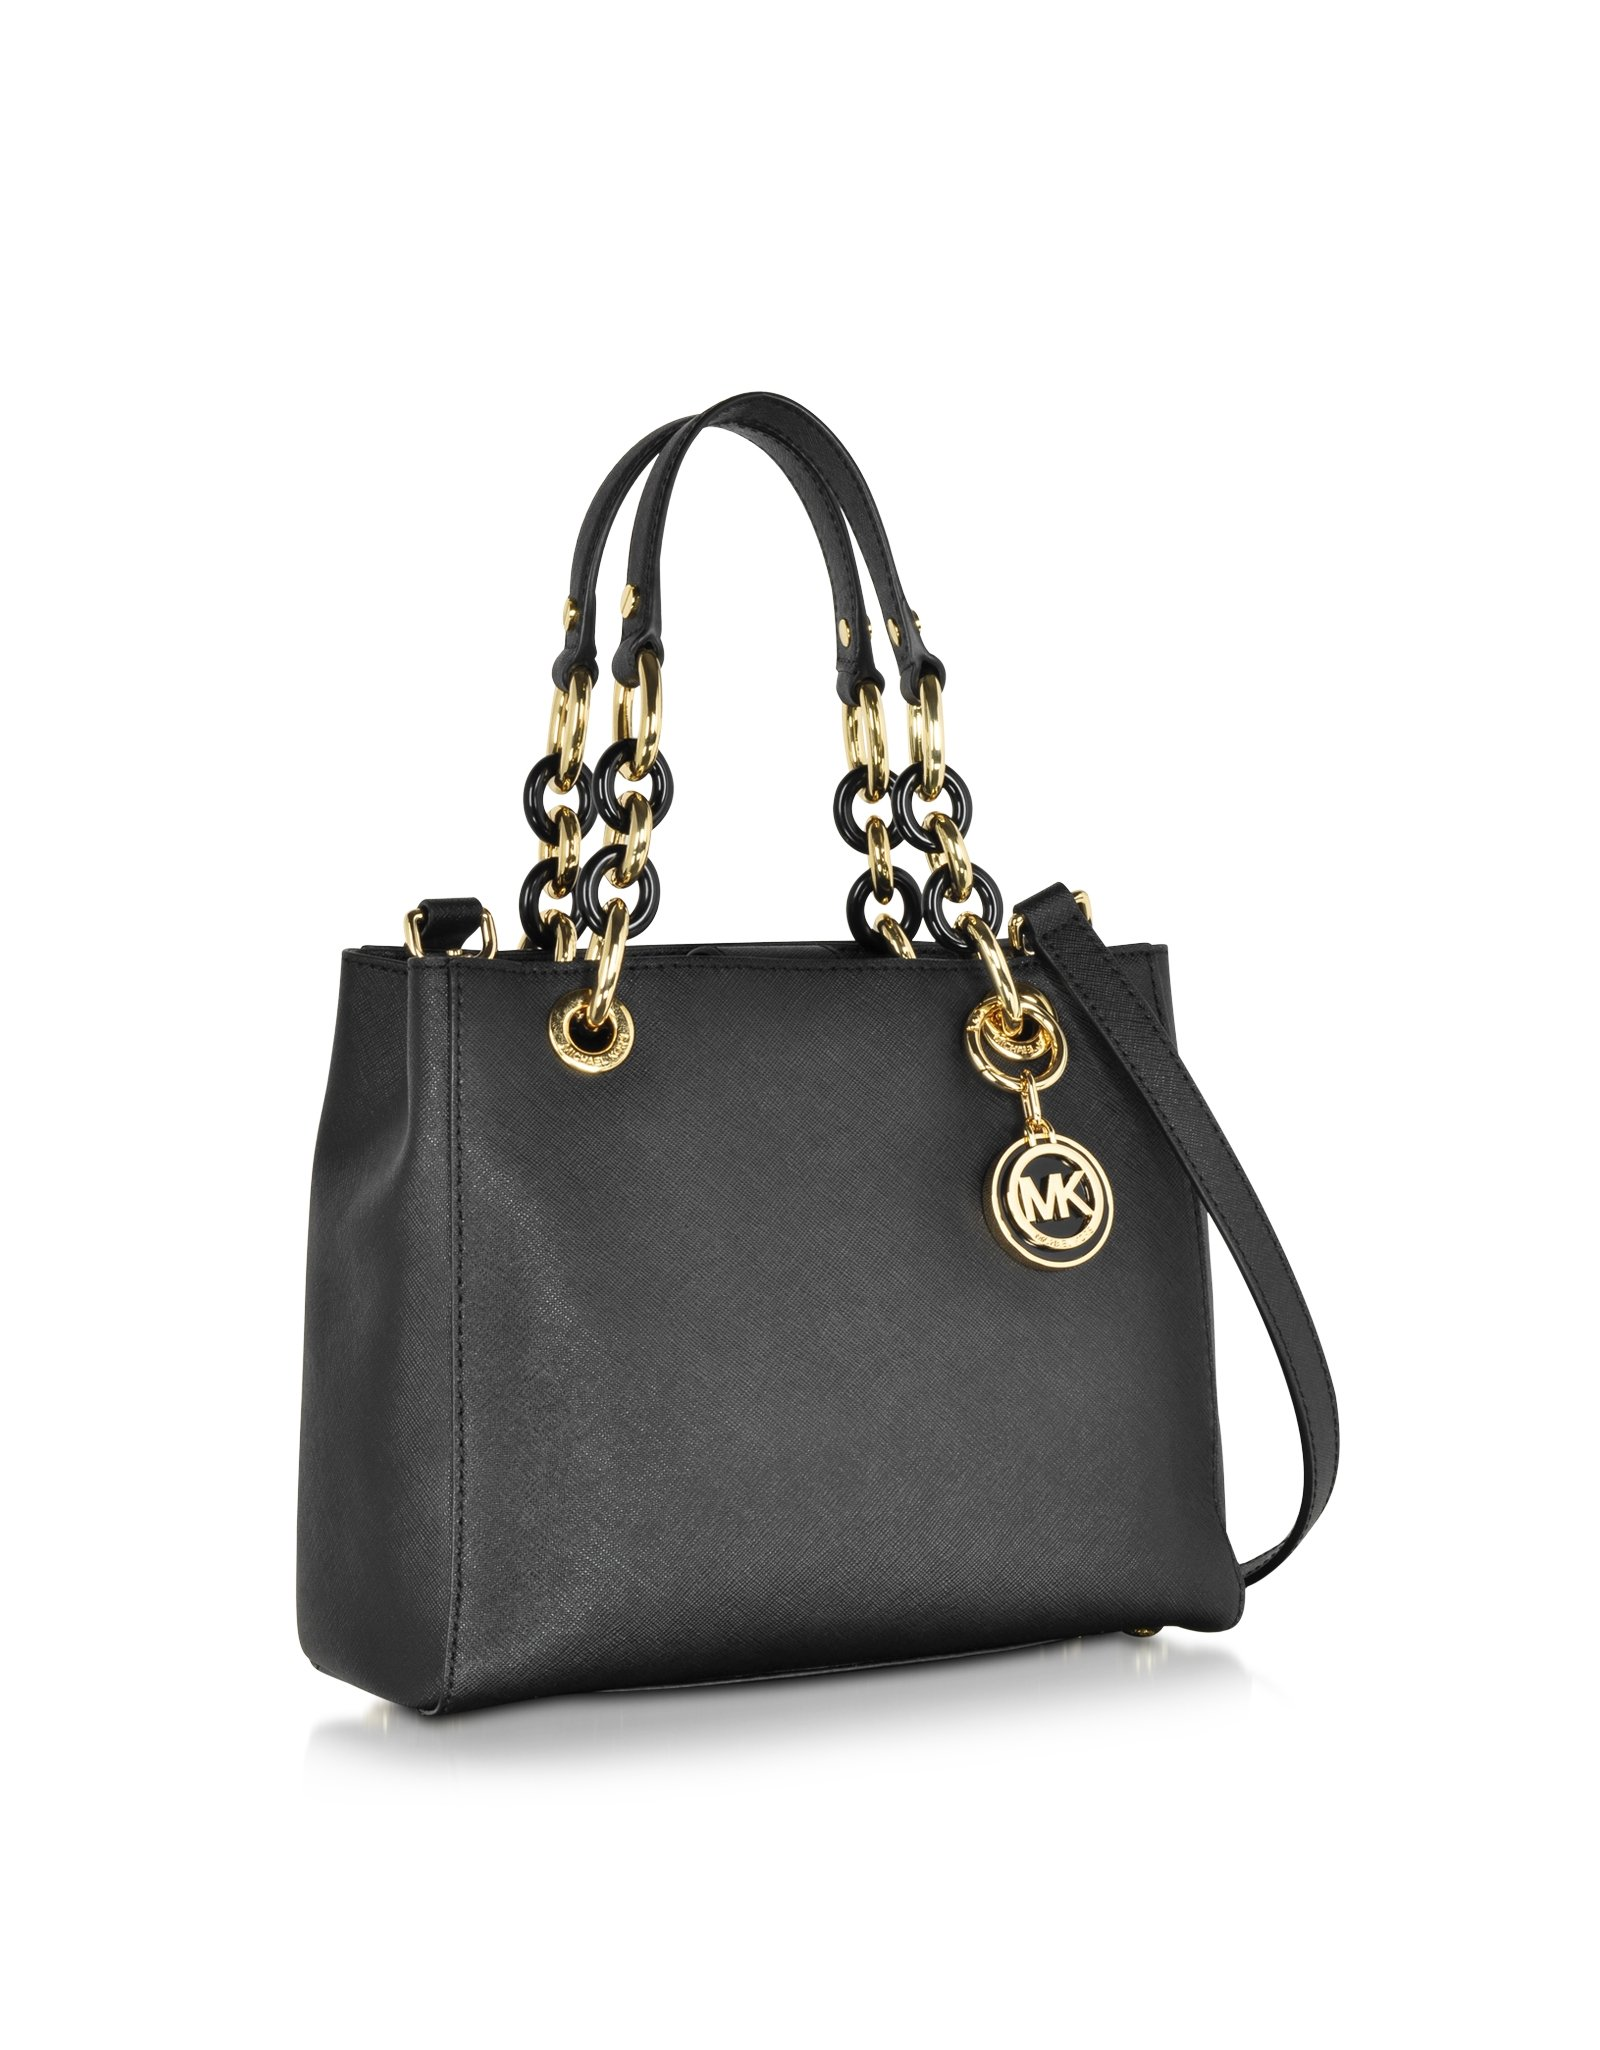 michael kors cynthia small saffiano leather ns satchel bag in black lyst. Black Bedroom Furniture Sets. Home Design Ideas